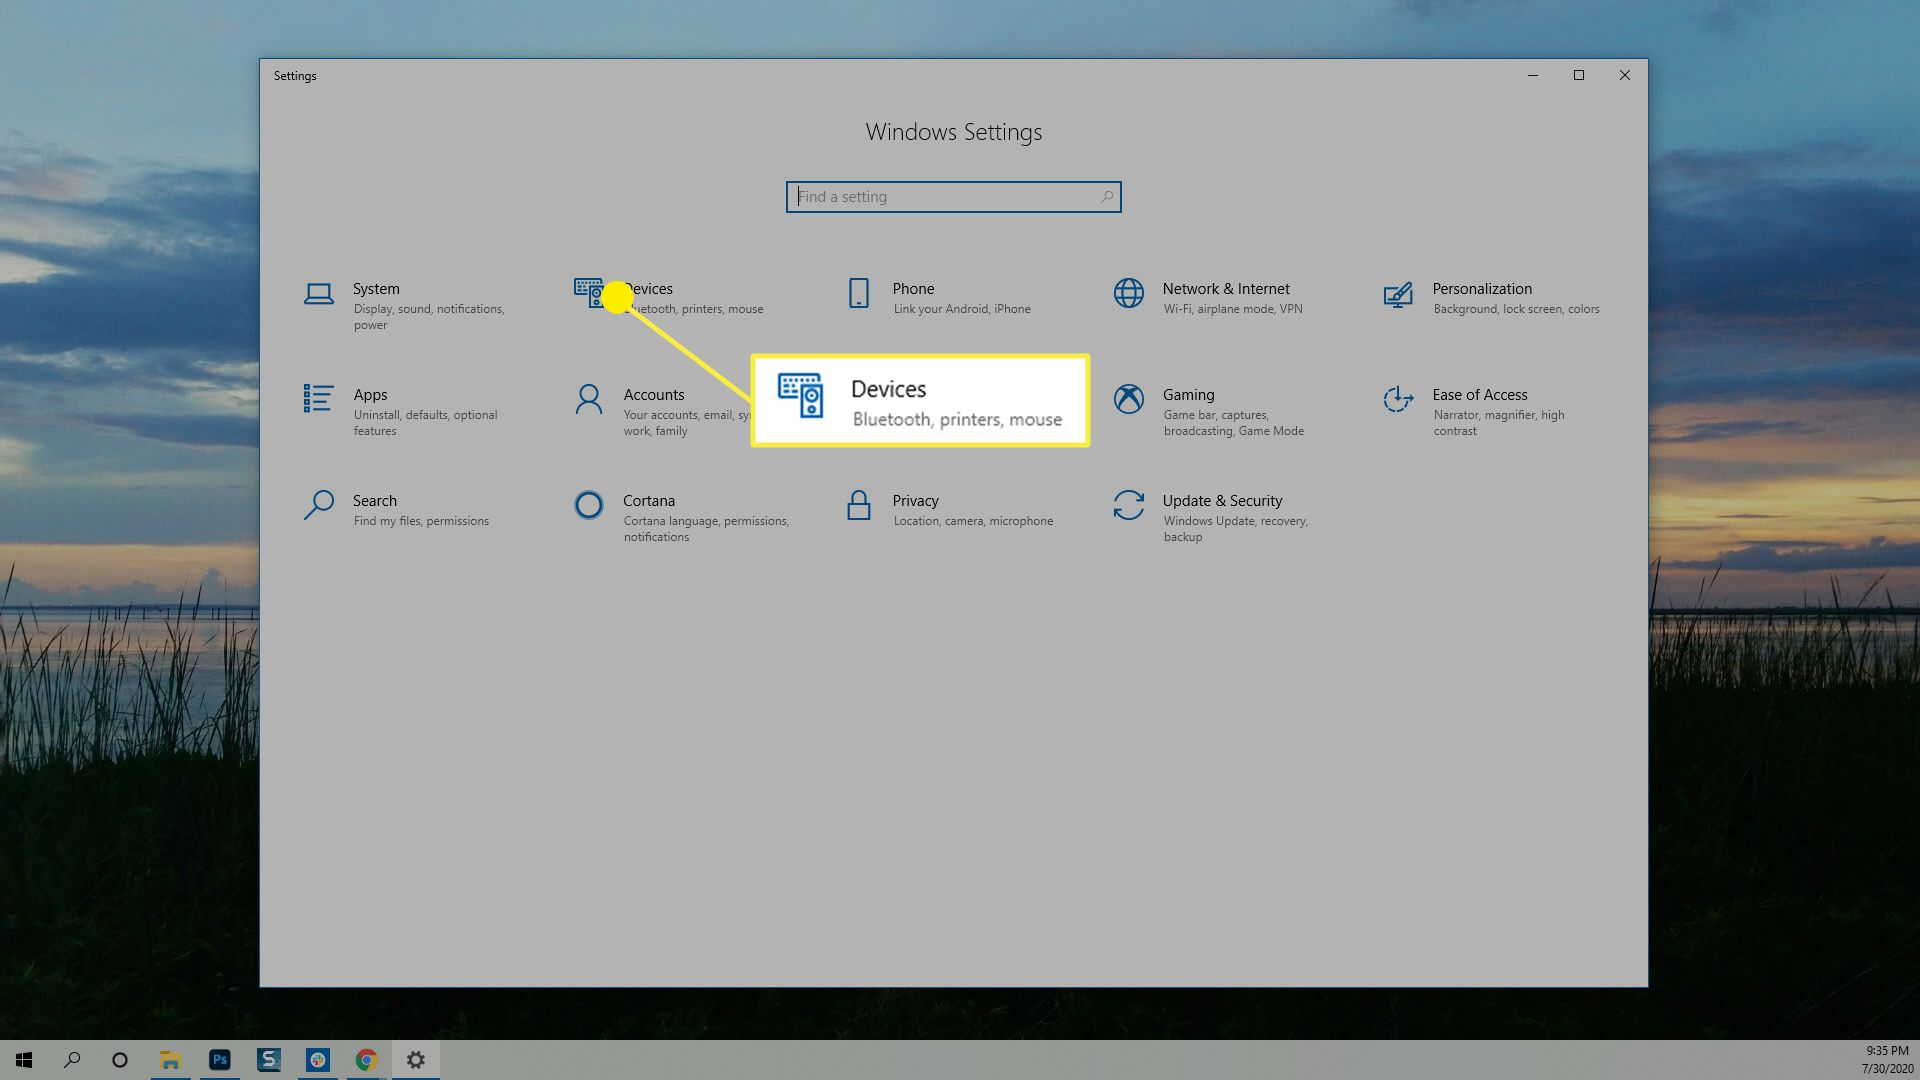 The Devices option in Windows Settings.